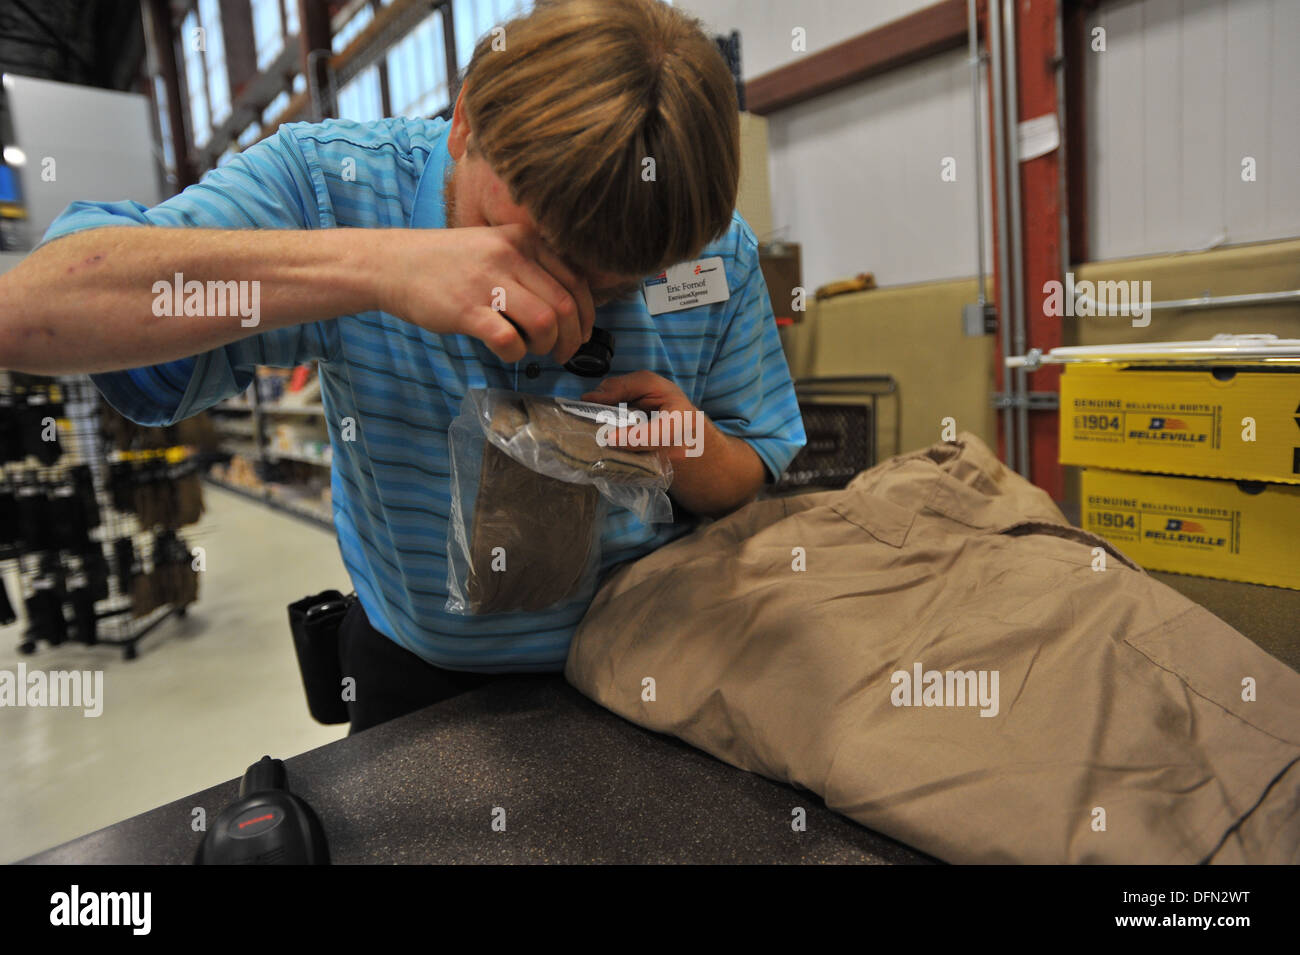 Eric Fornoff, Envision cashier, looks through his pocket magnifier to read a price tag at the base supply store at Fairchild Air Force Base, Wash., Sept. 30, 2013. Fornoff is legally blind and has been working on Fairchild for eight years. - Stock Image